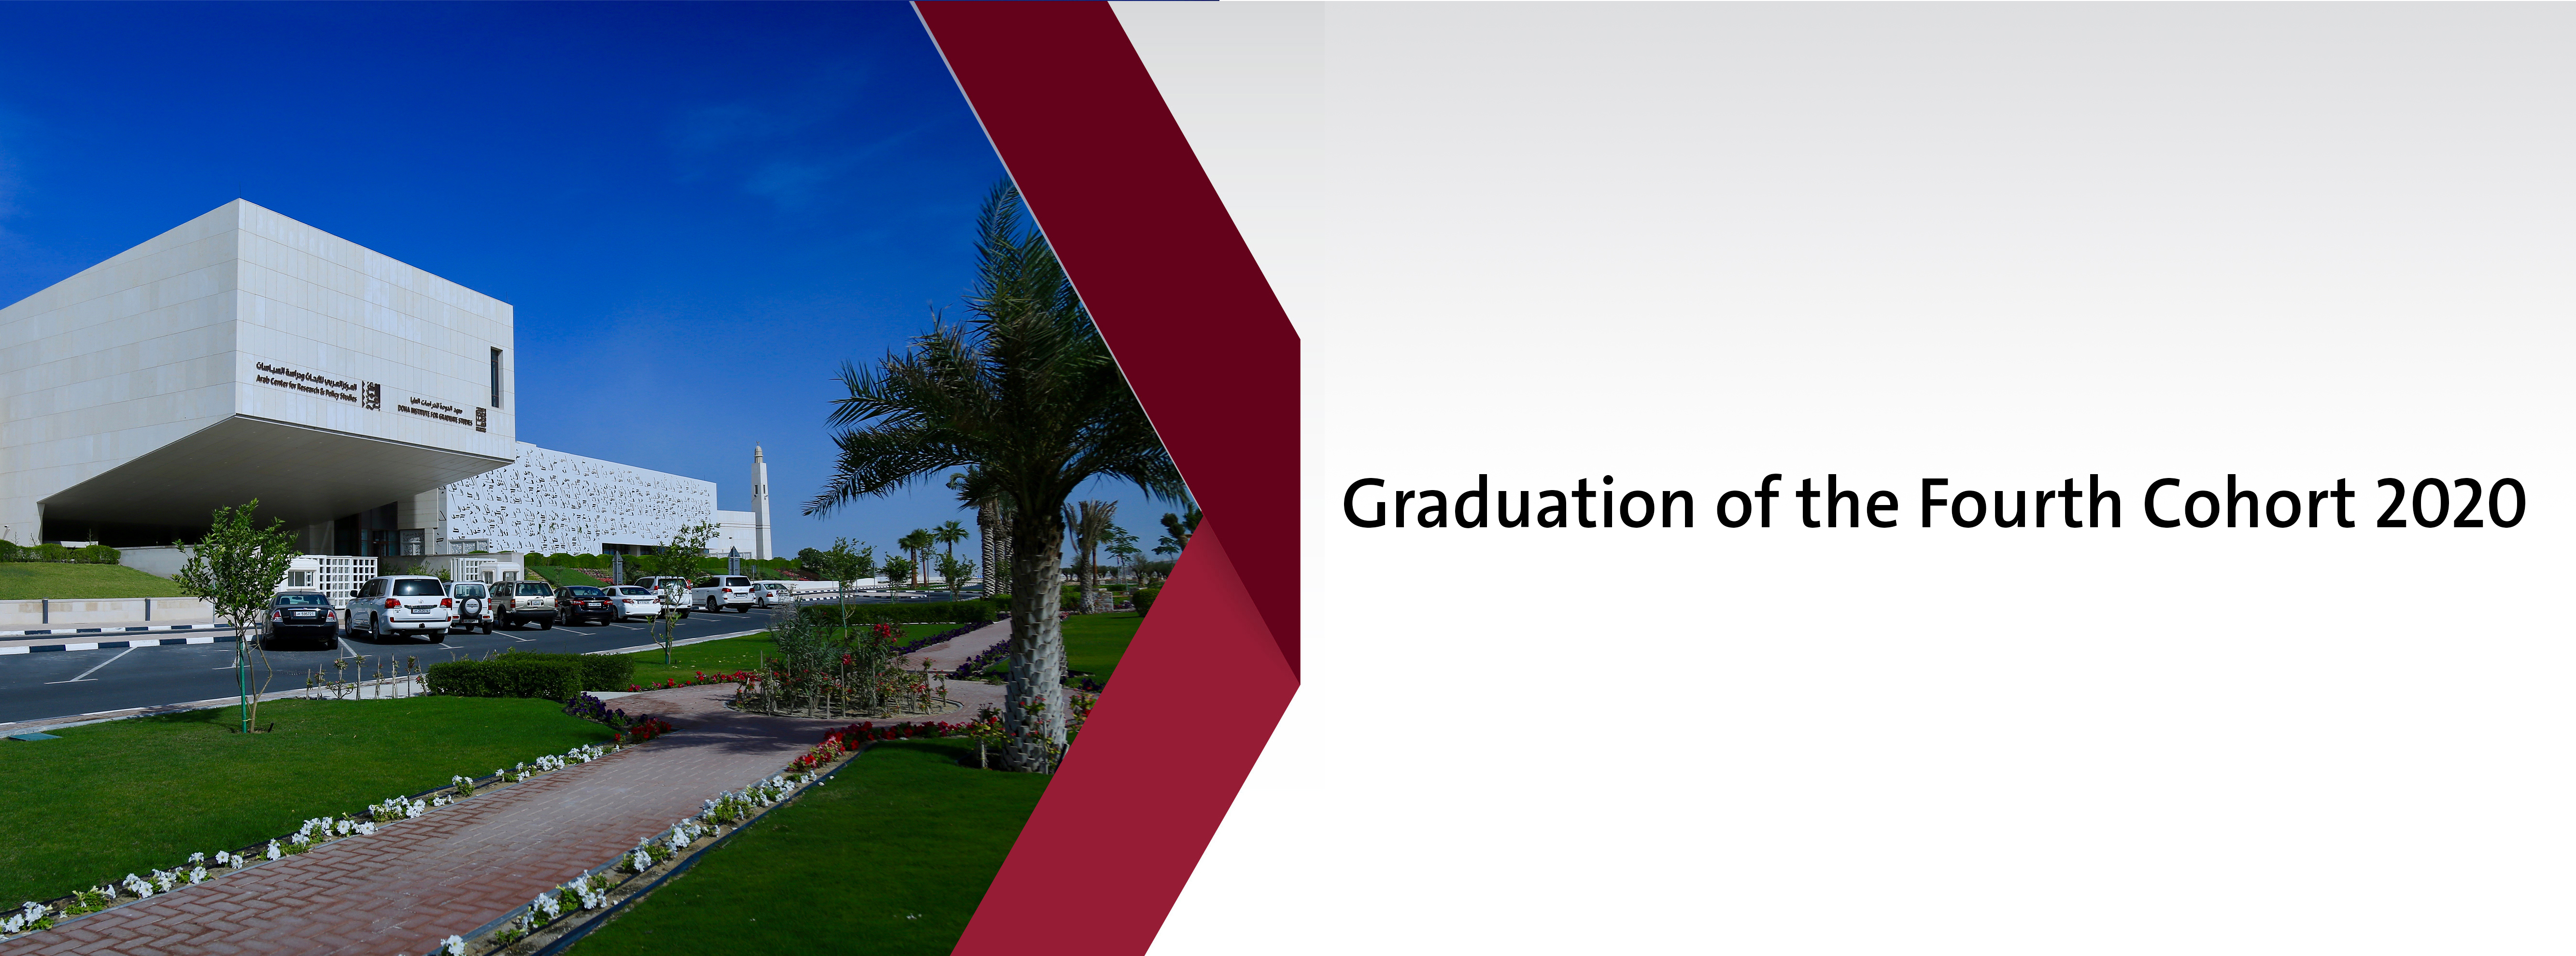 Doha Institute for Graduate Studies announces the graduation of its fourth cohort